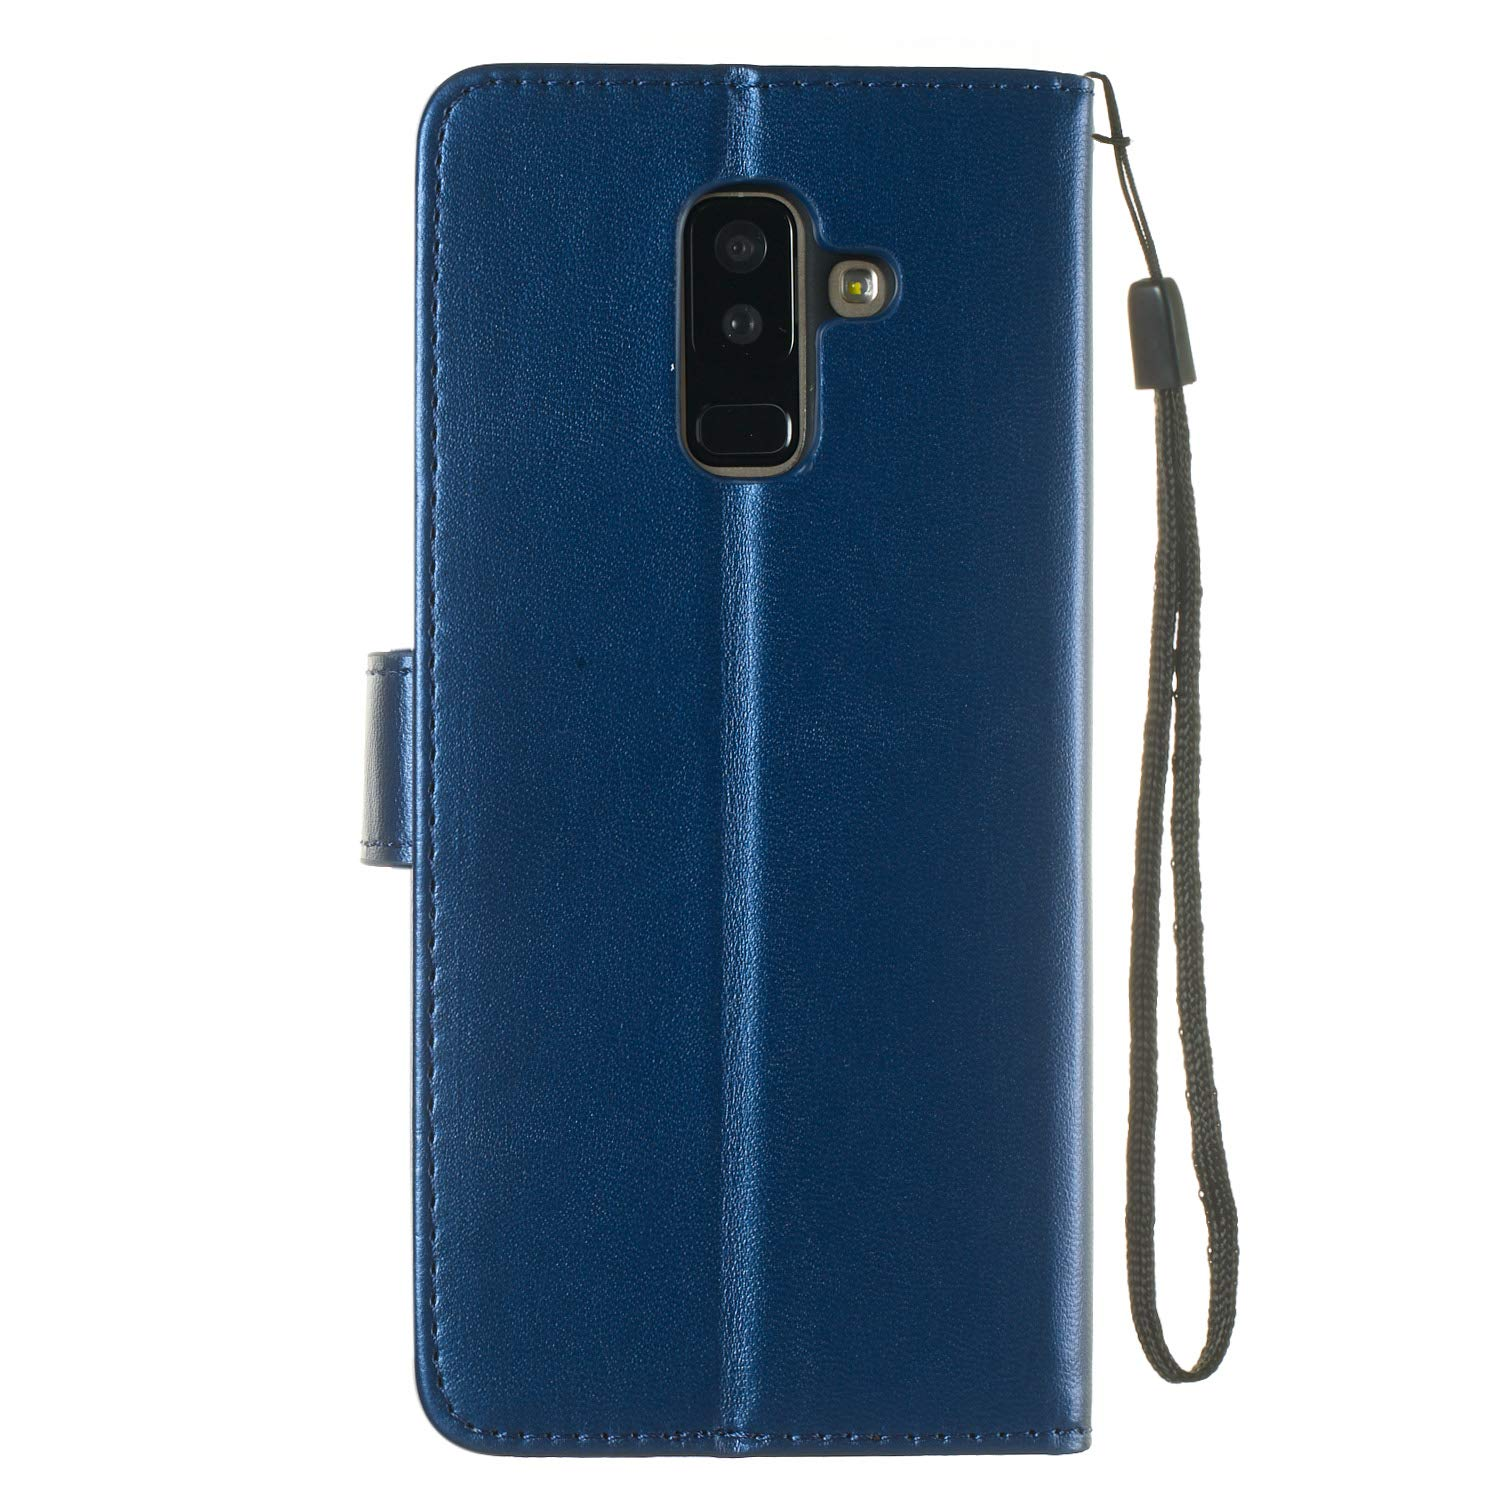 2018 Lomogo Samsung Galaxy A6+ - LOYHU250057 L2 A6 Plus 2018 Case Leather Wallet Case with Kickstand Card Holder Shockproof Flip Case Cover for Galaxy A6+